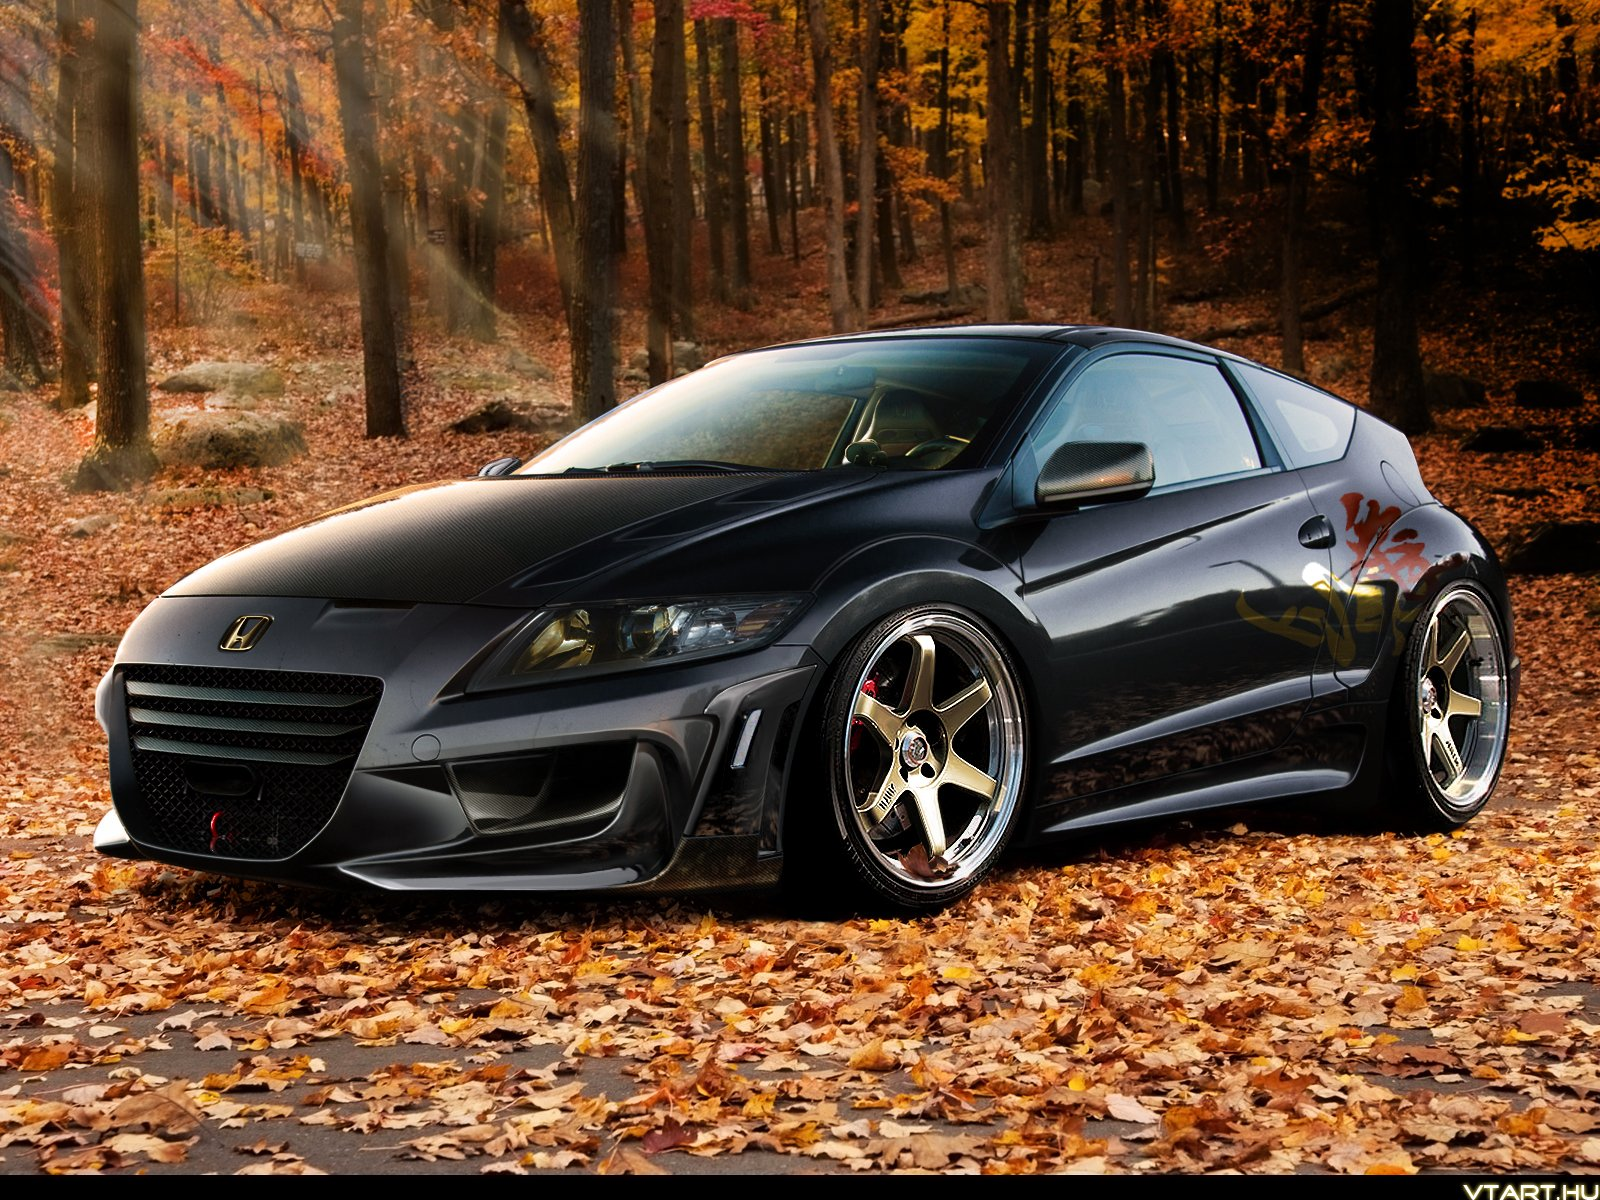 honda cr z coupe cars tuning japan wallpaper 1600x1200. Black Bedroom Furniture Sets. Home Design Ideas